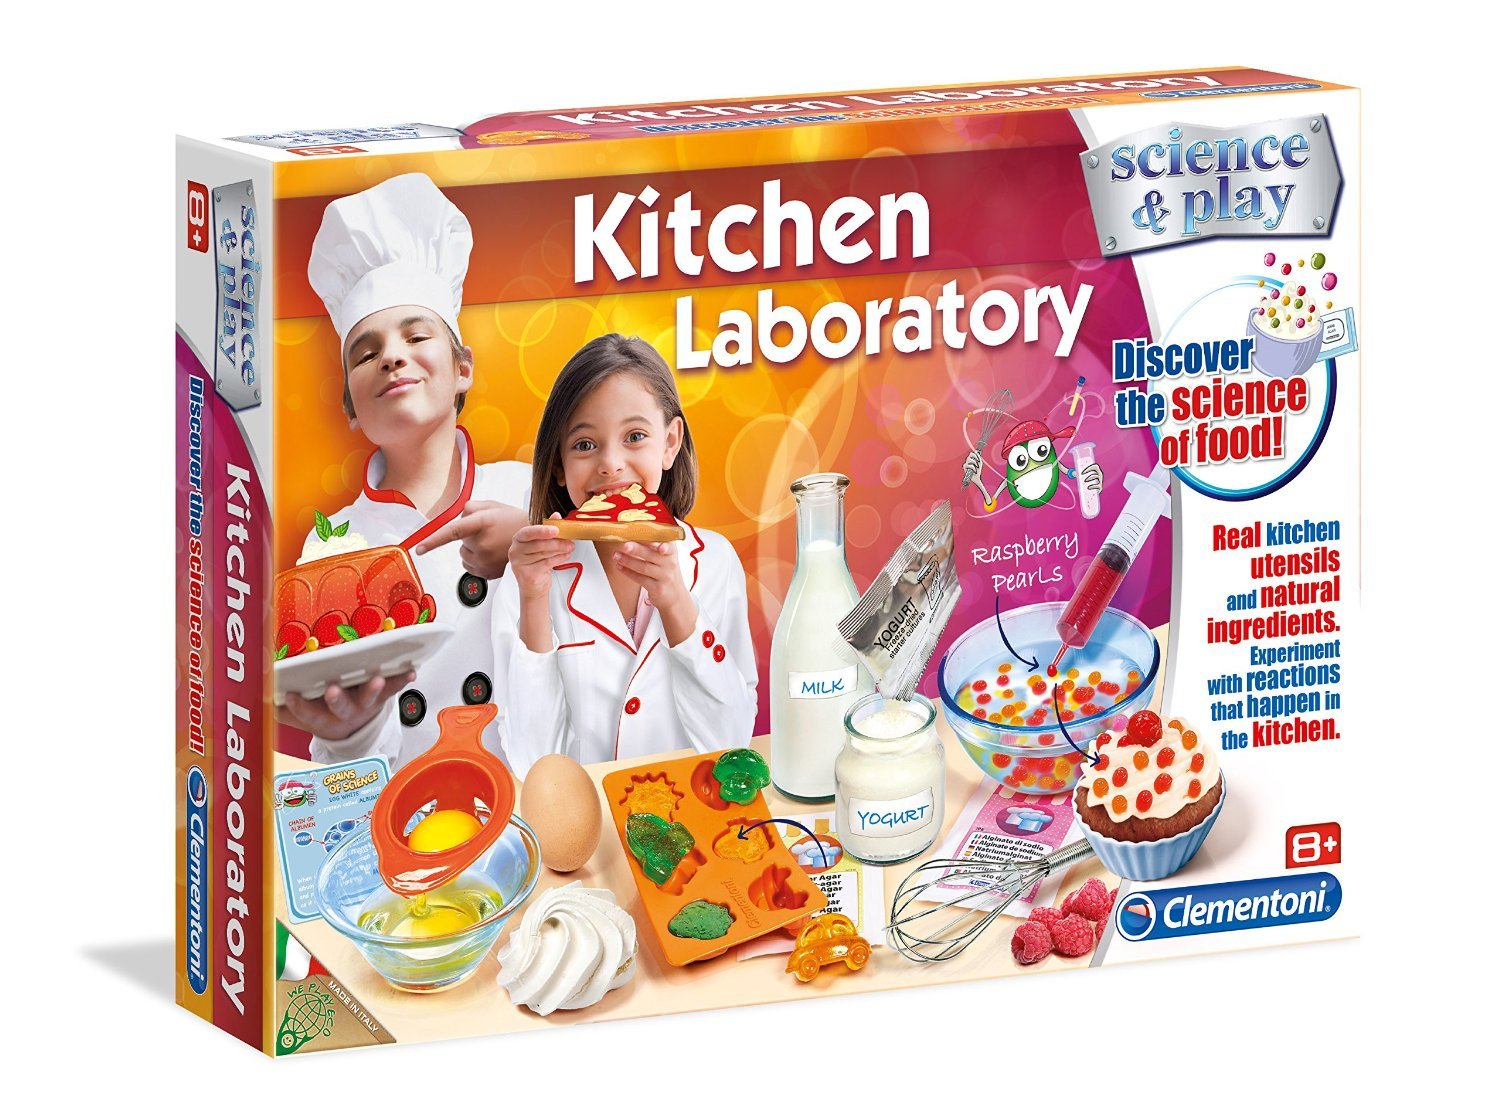 Clementoni Science & Play Kitchen Laboratory Set | Experiment with Reactions That Happen in the Kitchen